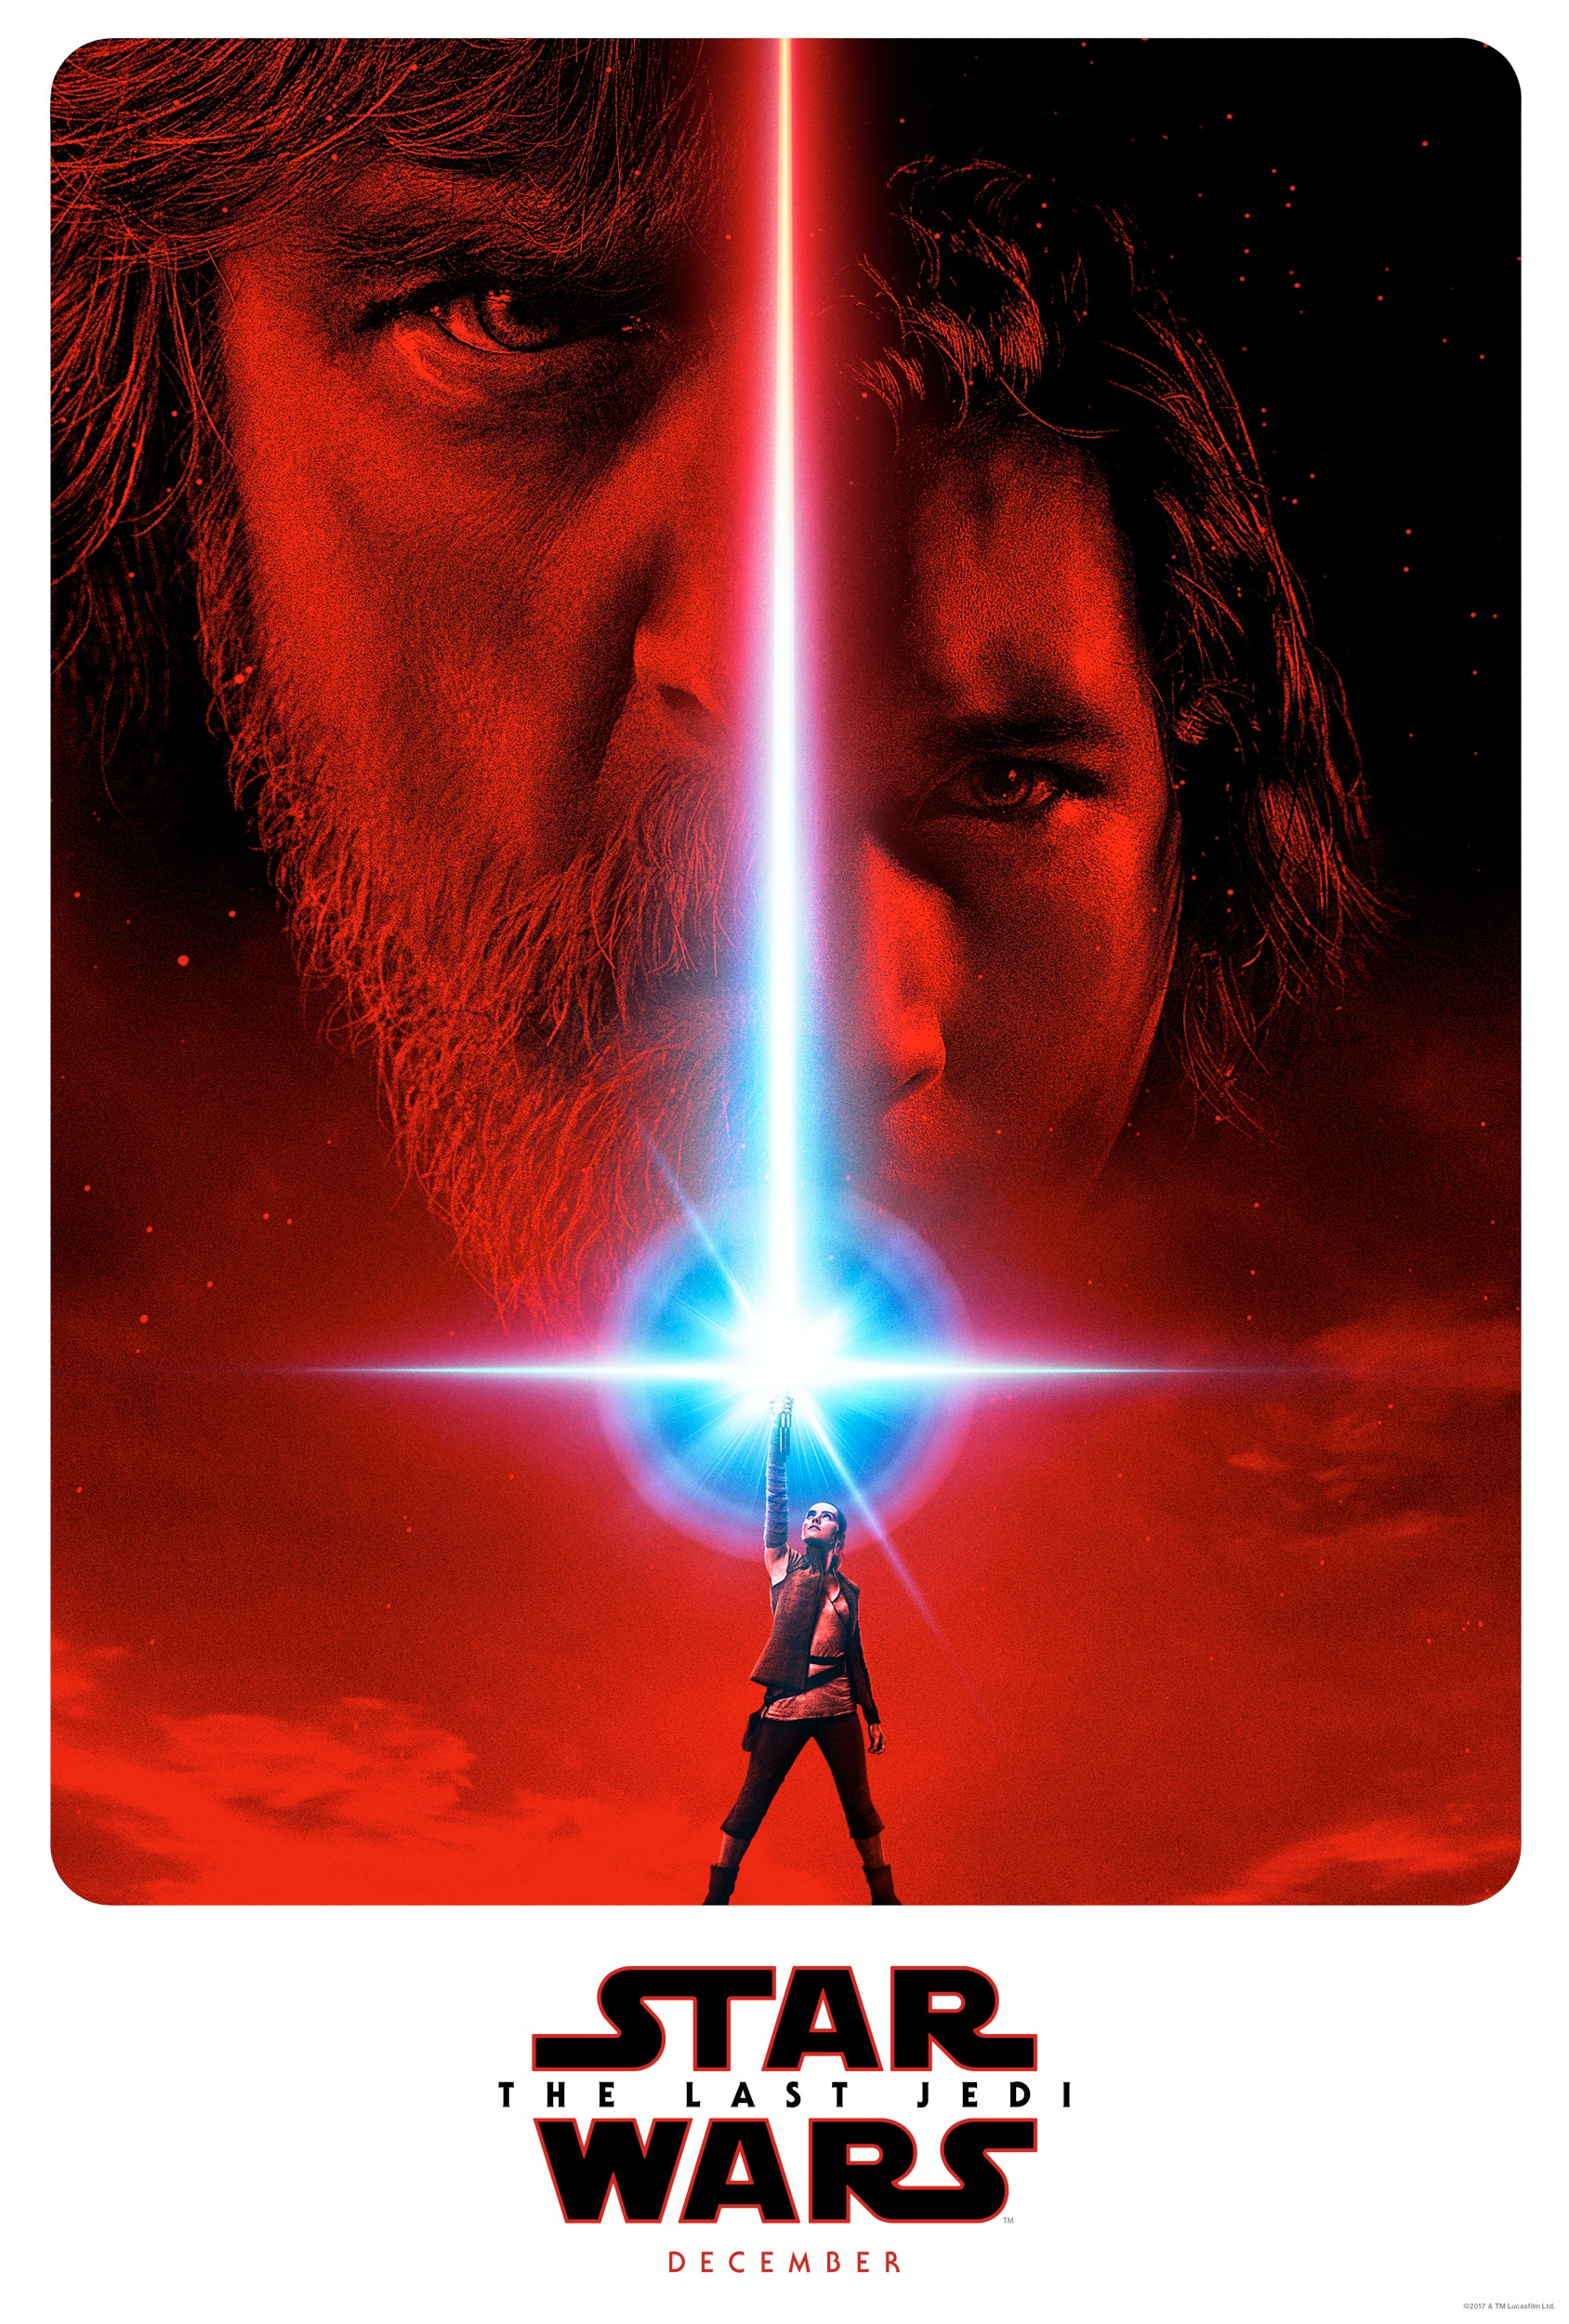 Star Wars Episode VIII: The Last Jedi - Poster